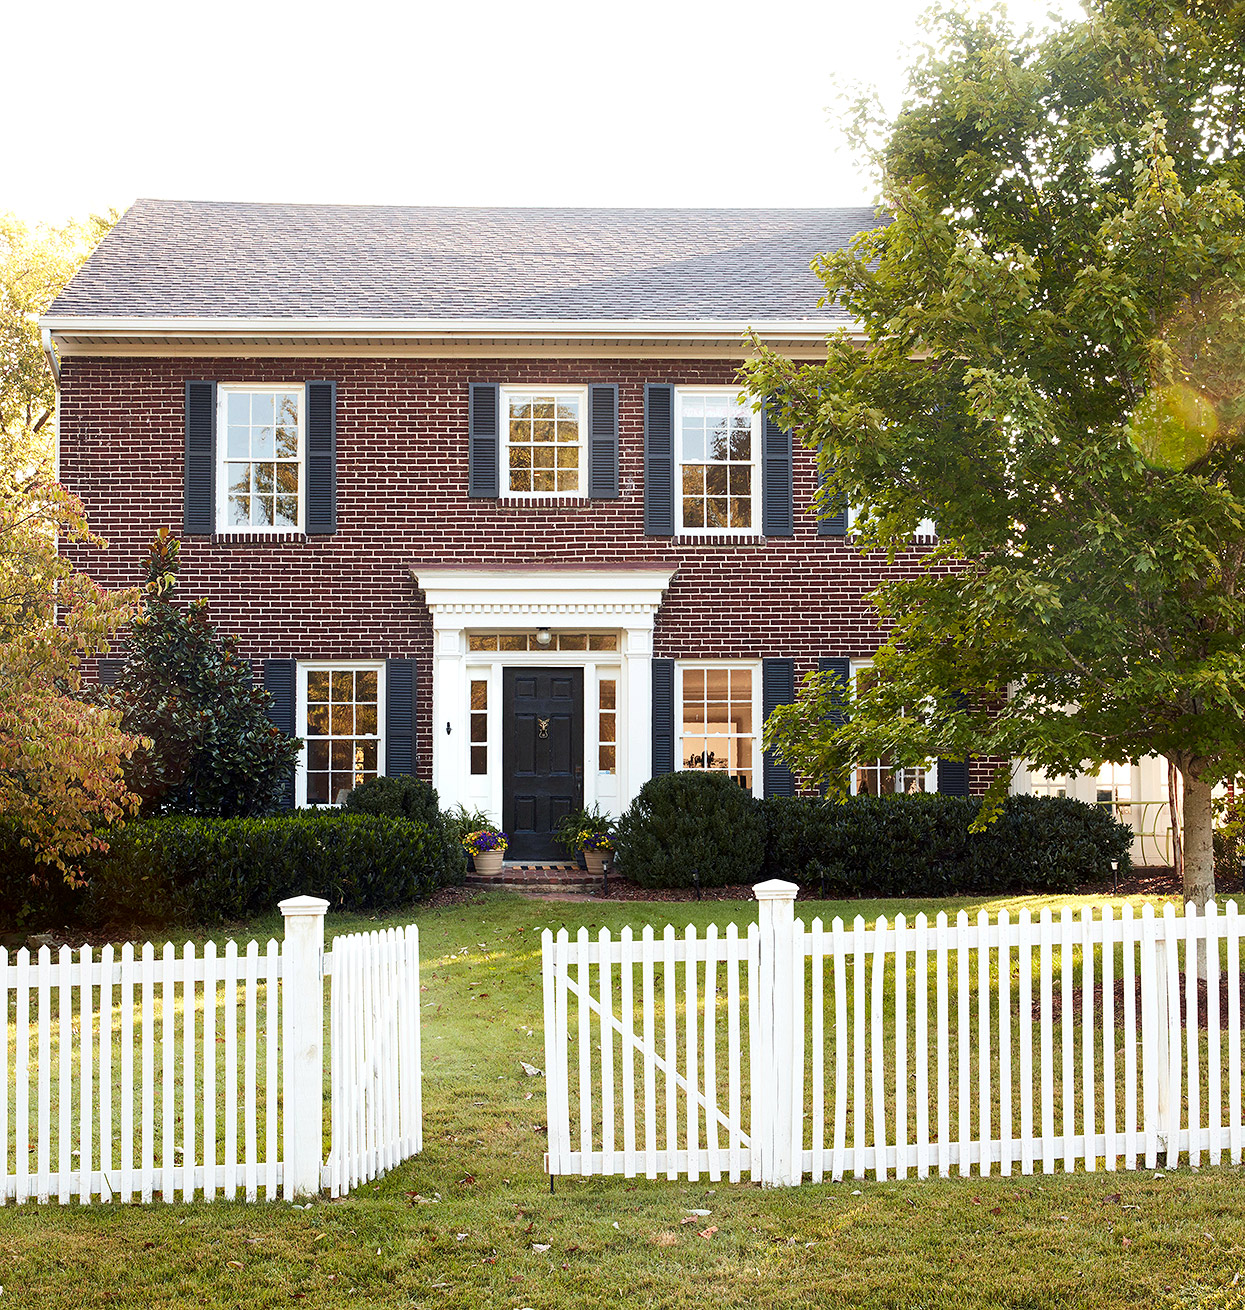 brick colonial home exterior with white picket fence